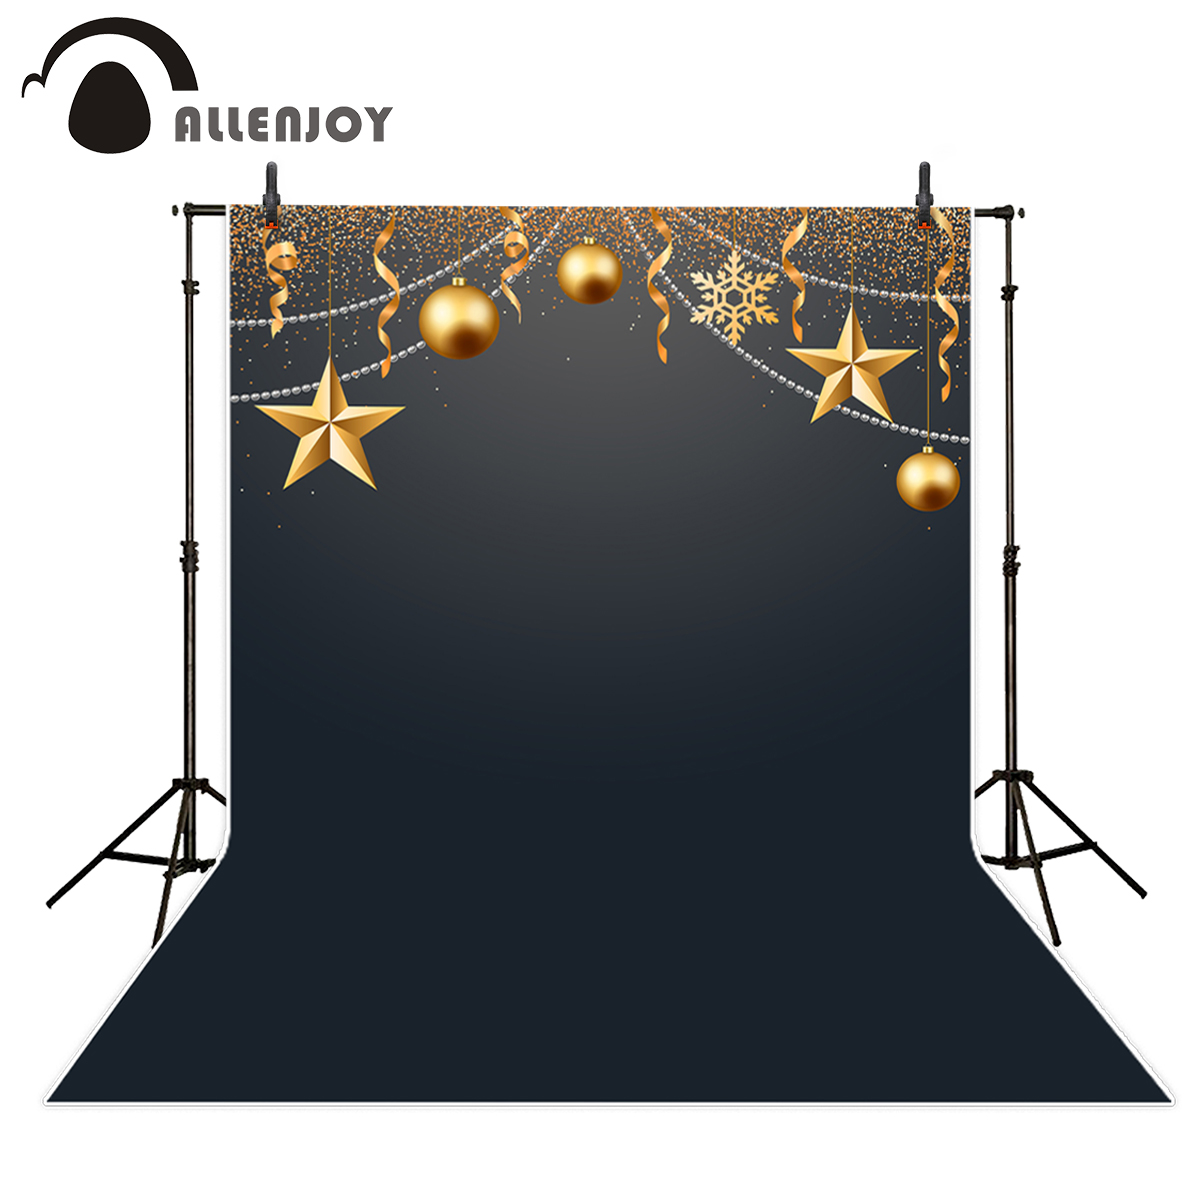 allenjoy photography backdrop luxury party celebrate birthday new year background photocall photo prop photobooth decor in background from consumer